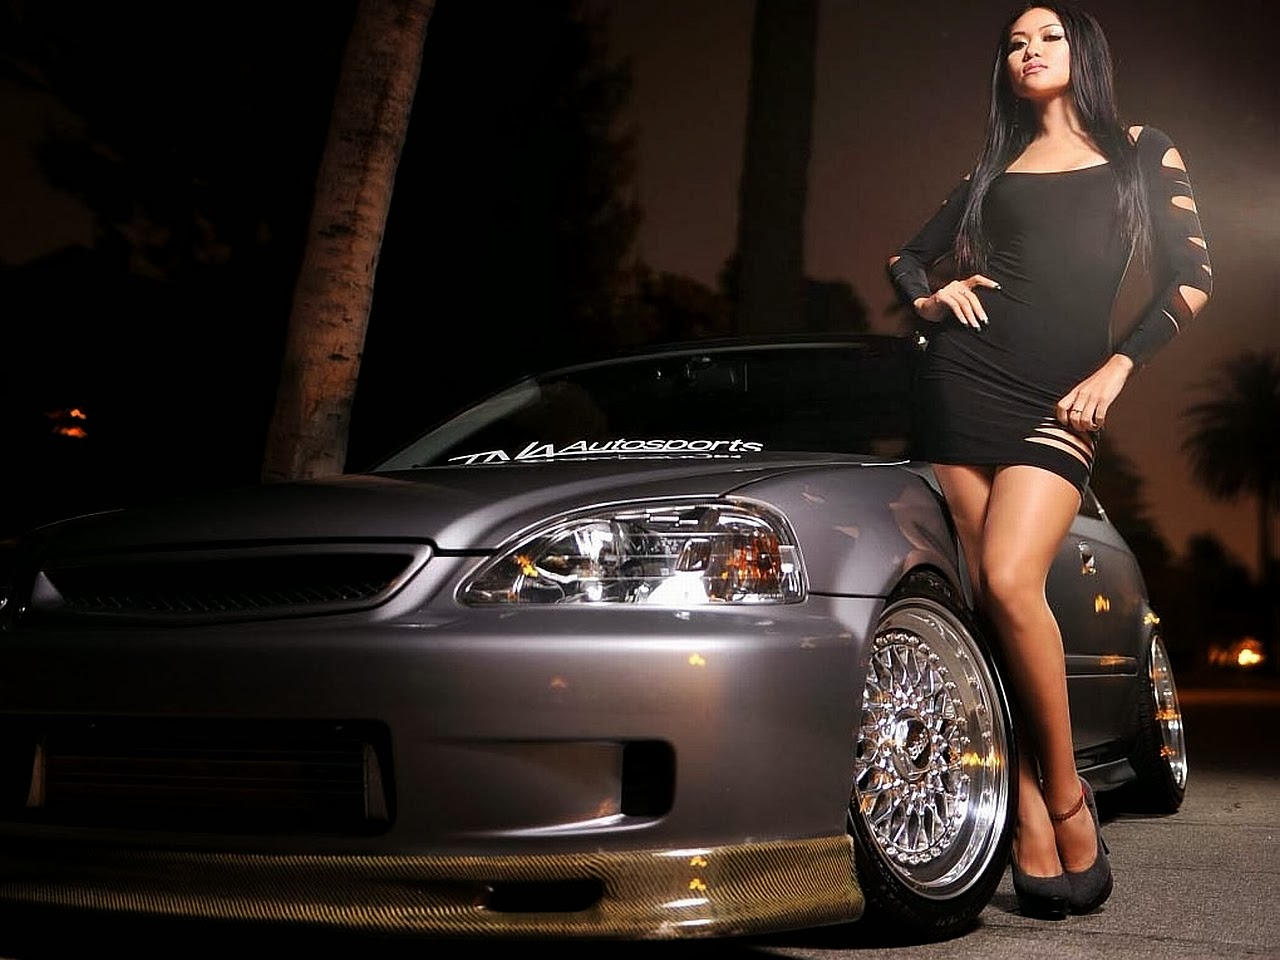 Latest-Exotic-Sports-car-with-hot-models-picture.jpg